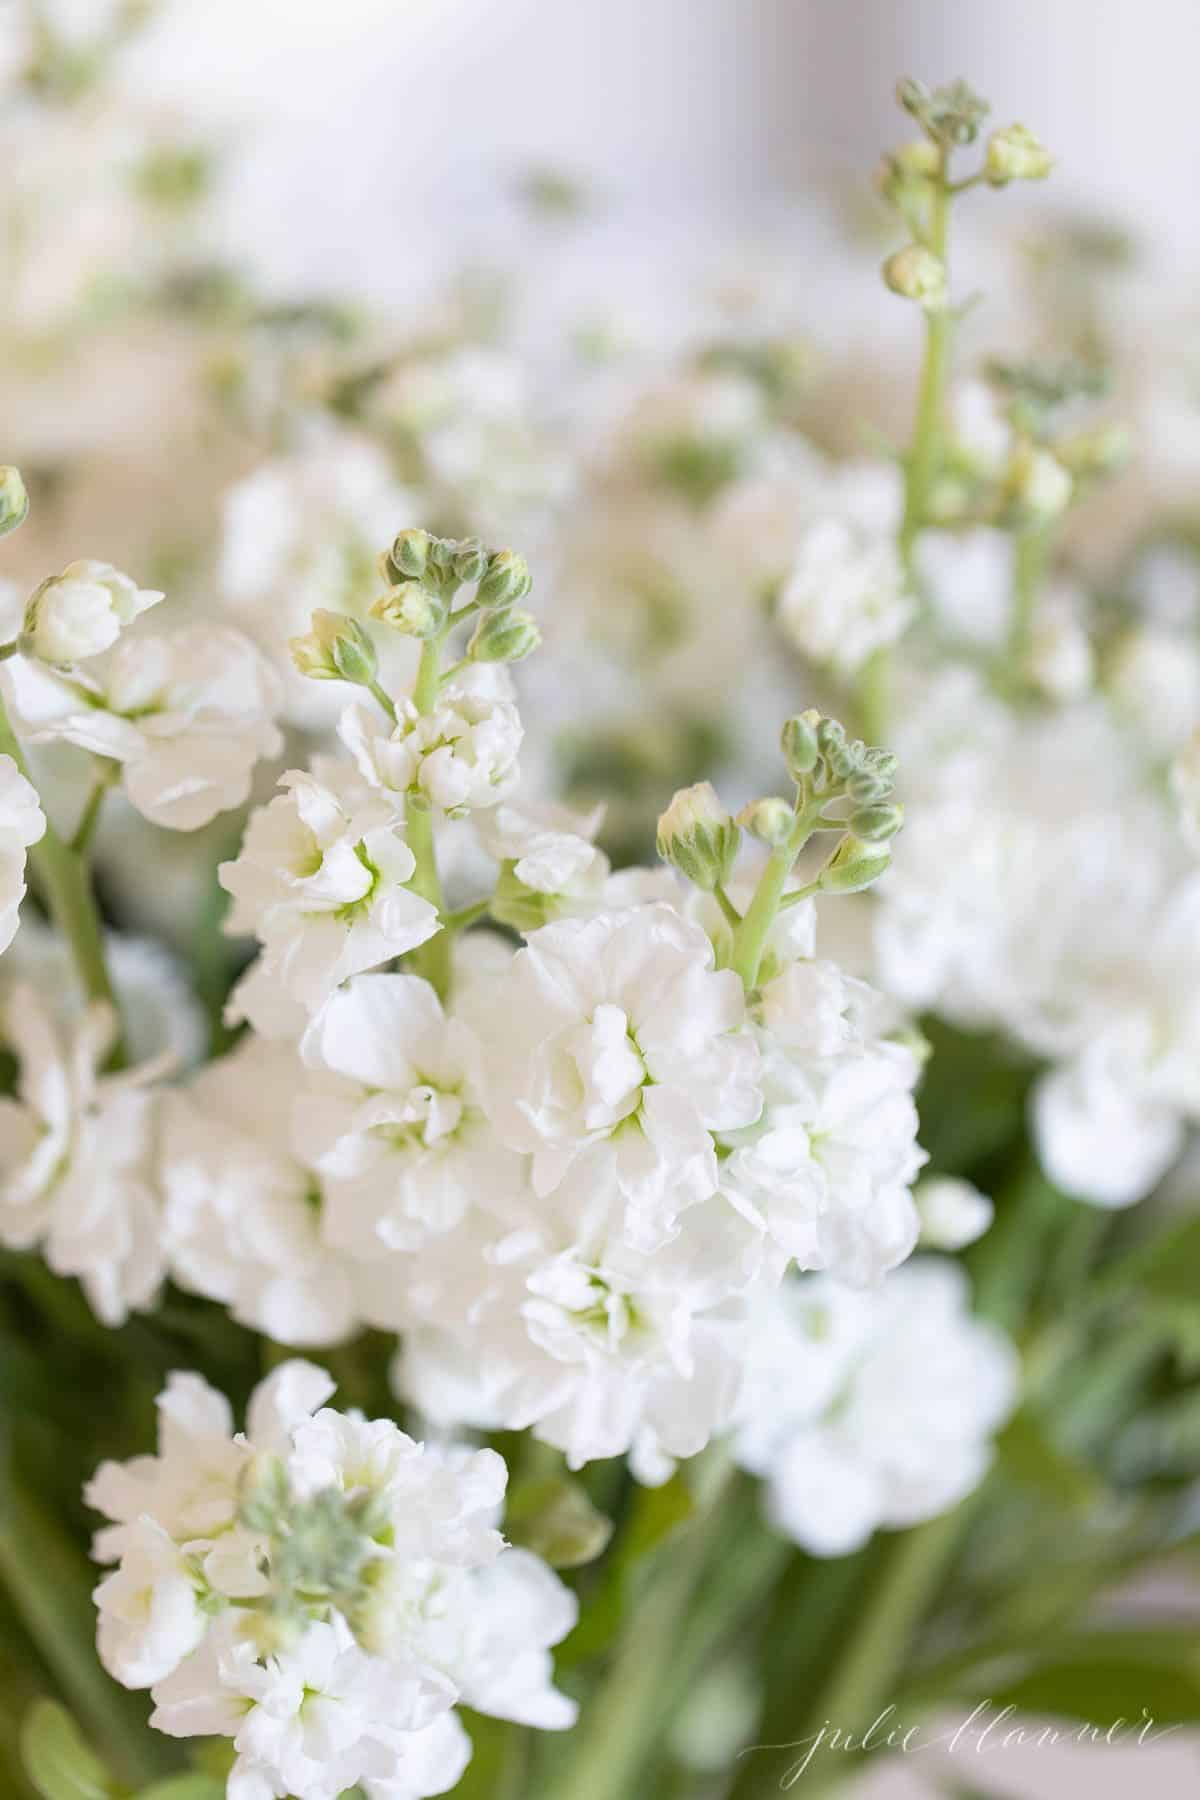 Close up of white stock flowers.